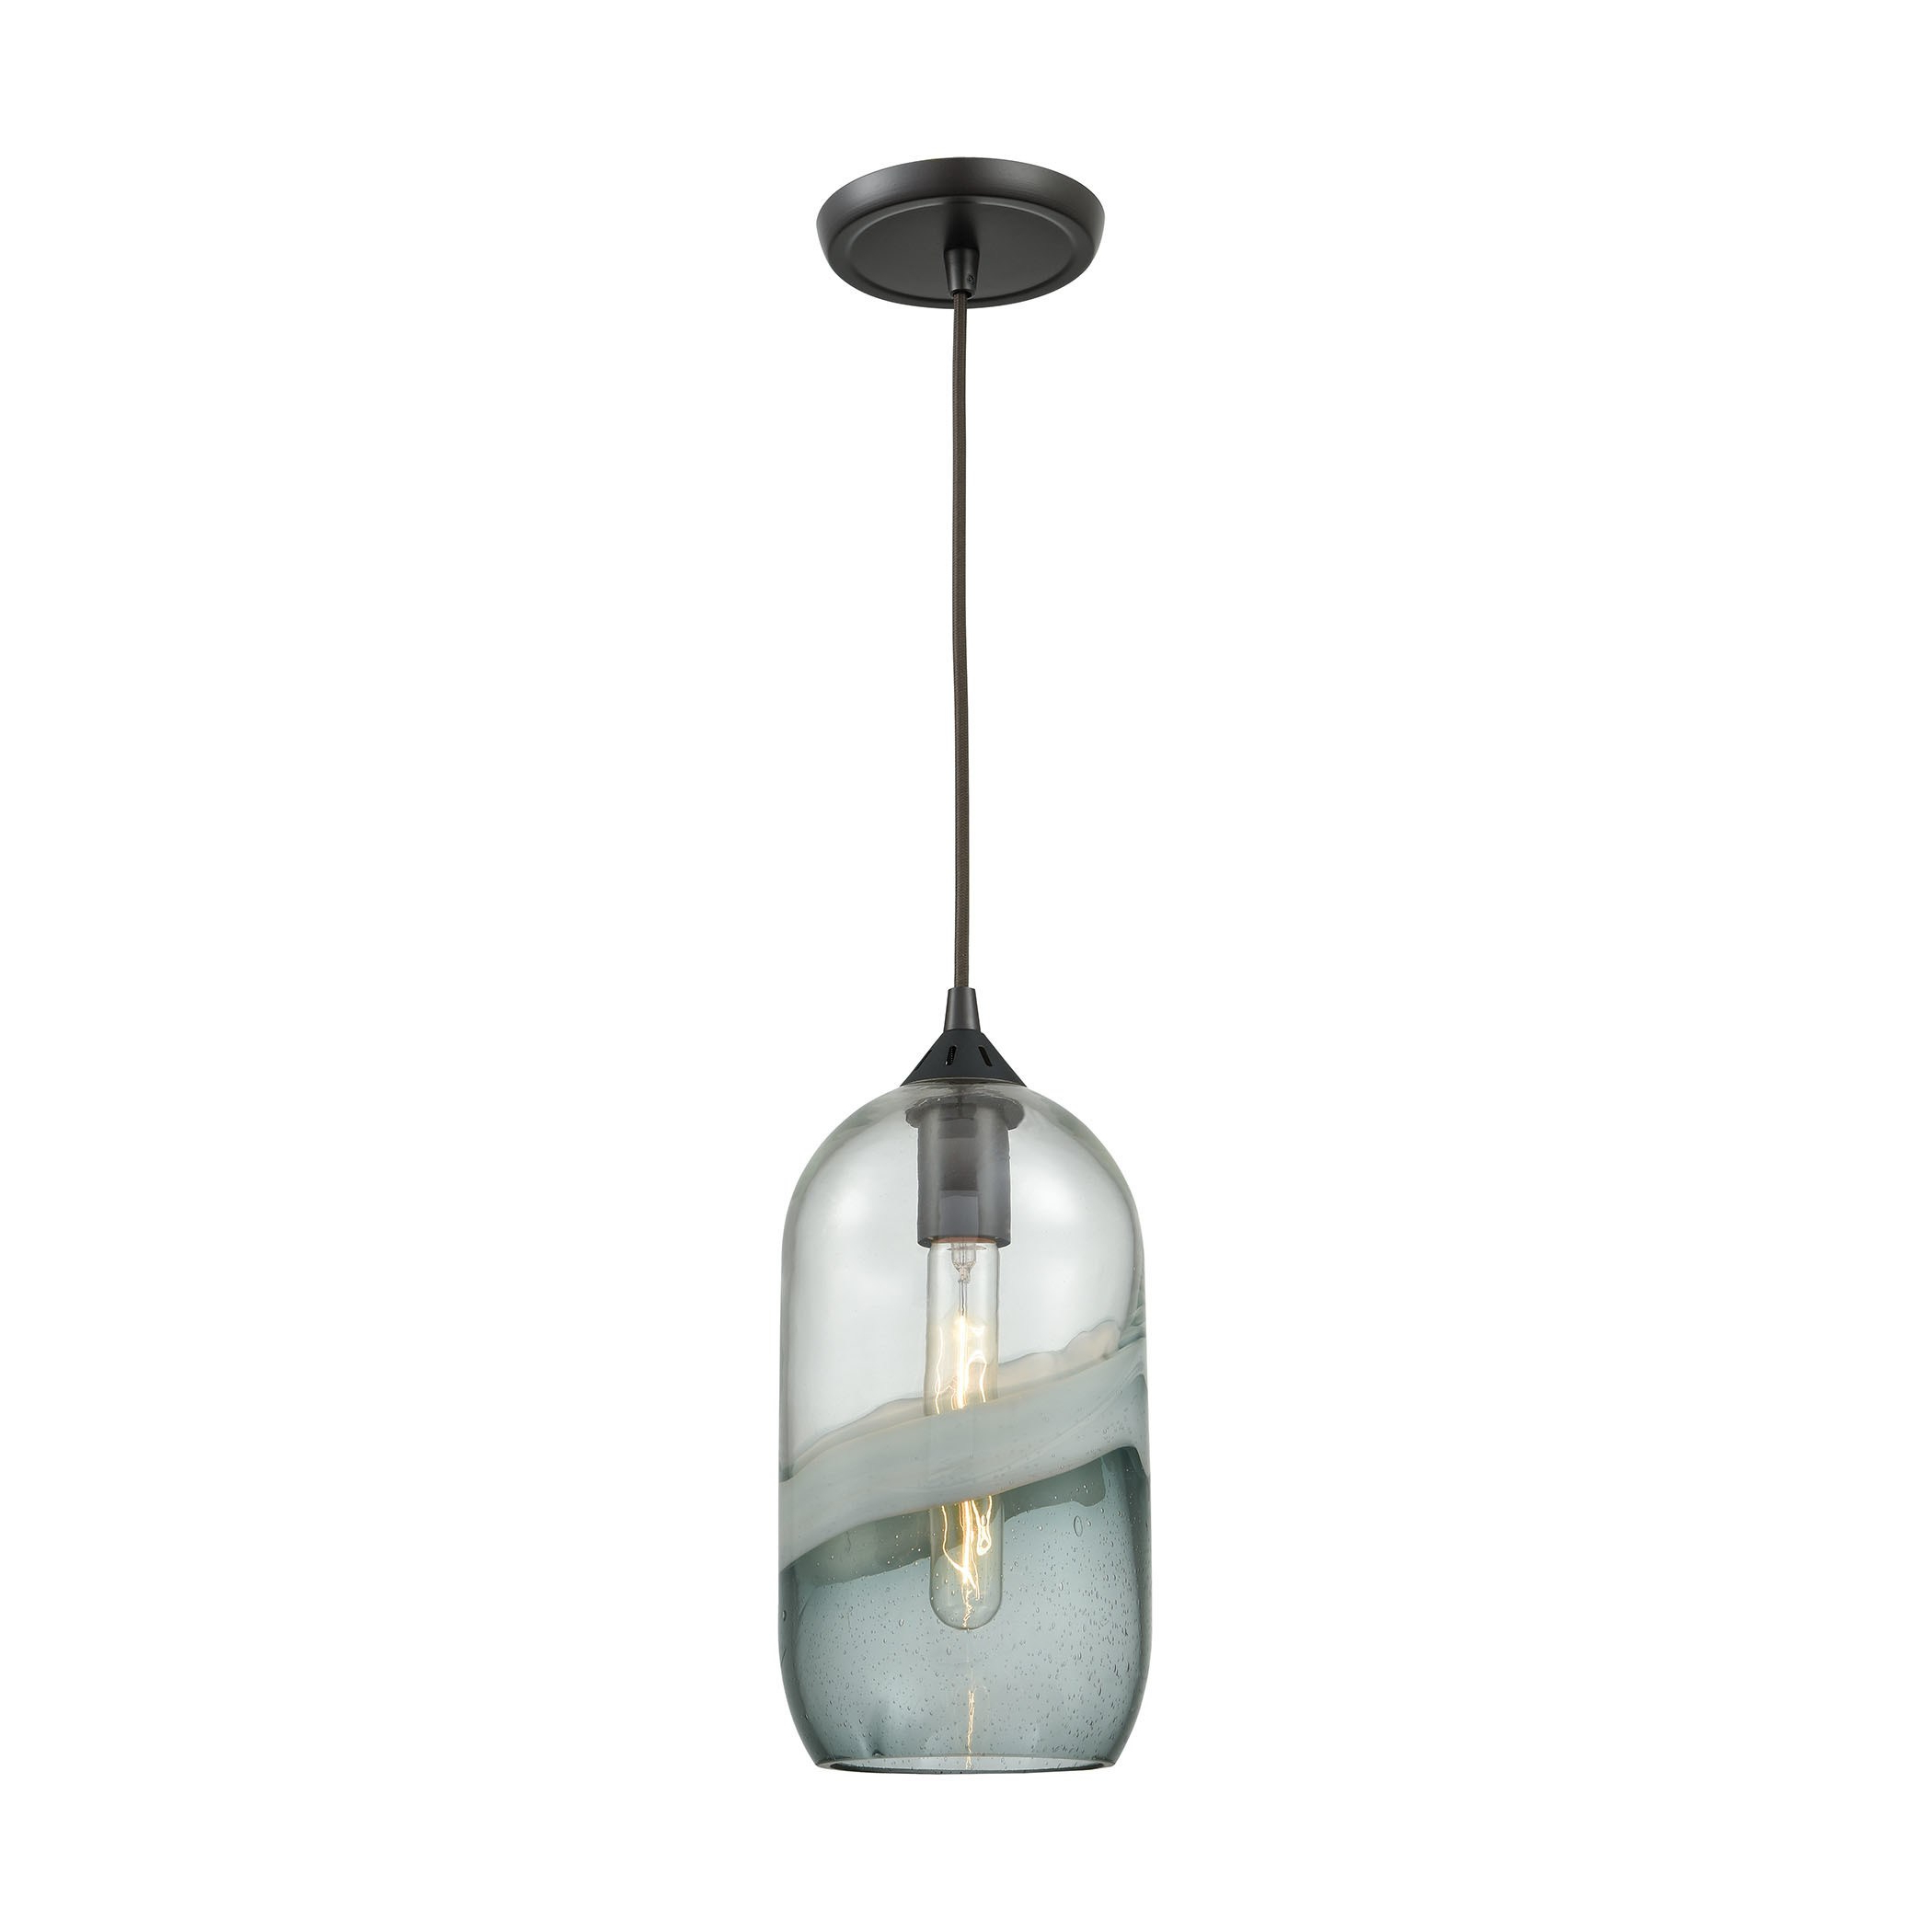 Moris 1 Light Cone Pendants Within 2019 Sutter Creek 1 Light Pendant, Oil Rubbed Bronze In  (View 13 of 25)